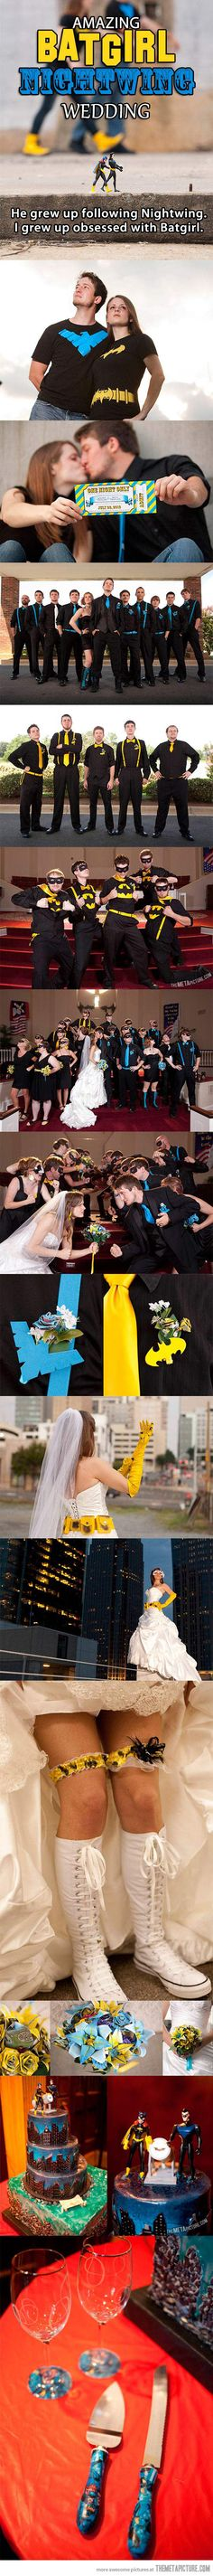 Batman themed wedding!!!! :D haha so cute:)